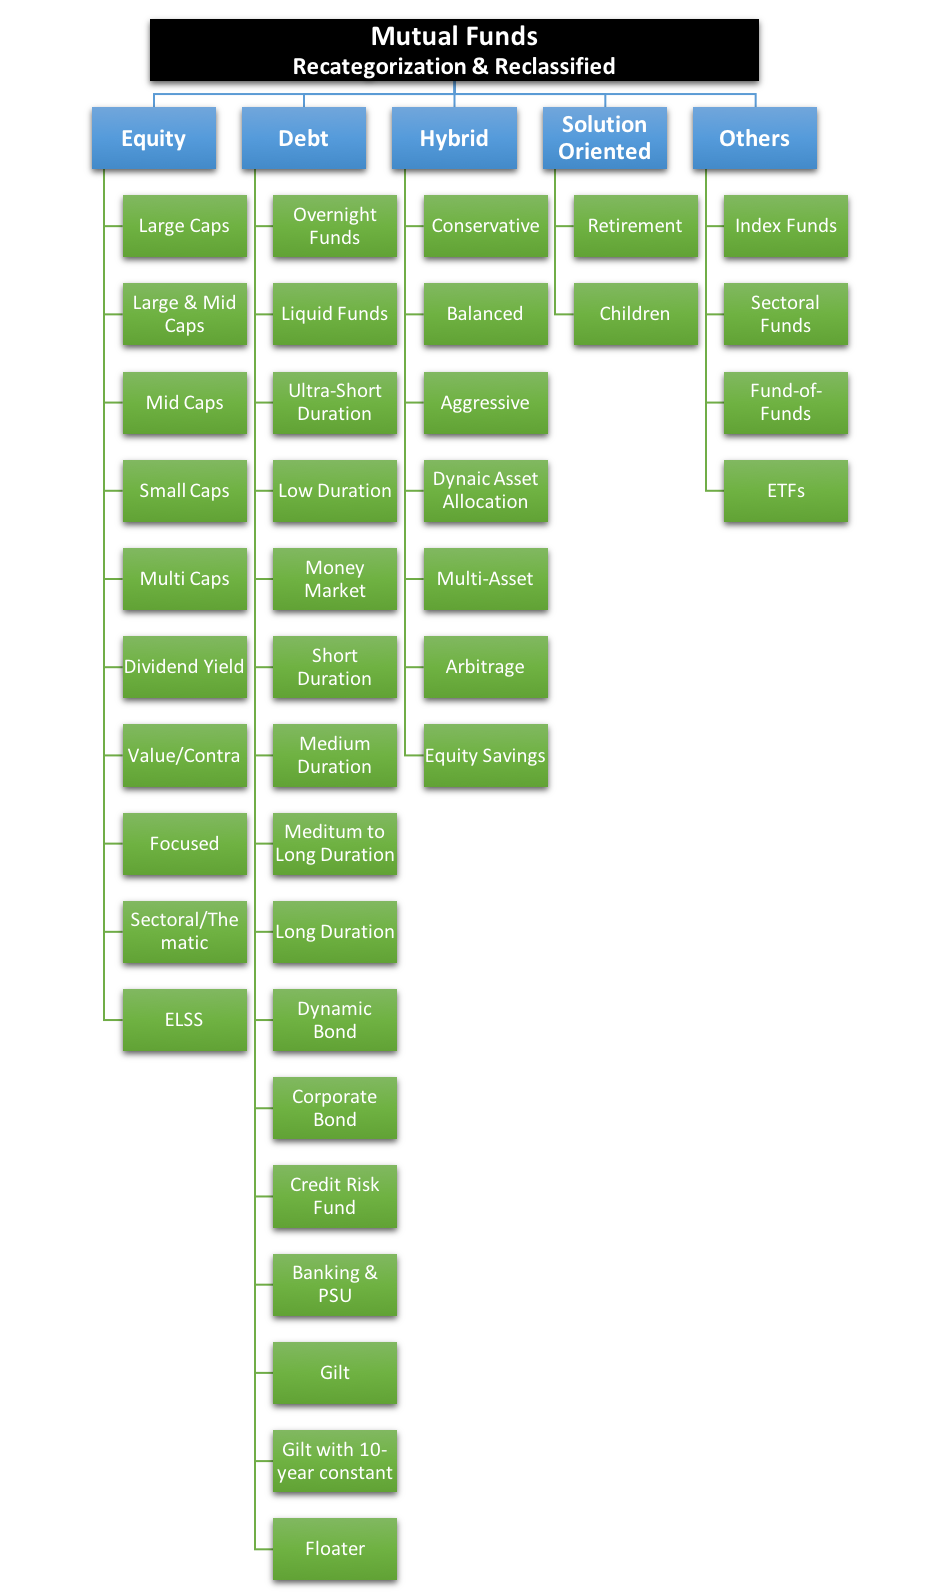 Mutual Fund Recategorization Flowchart